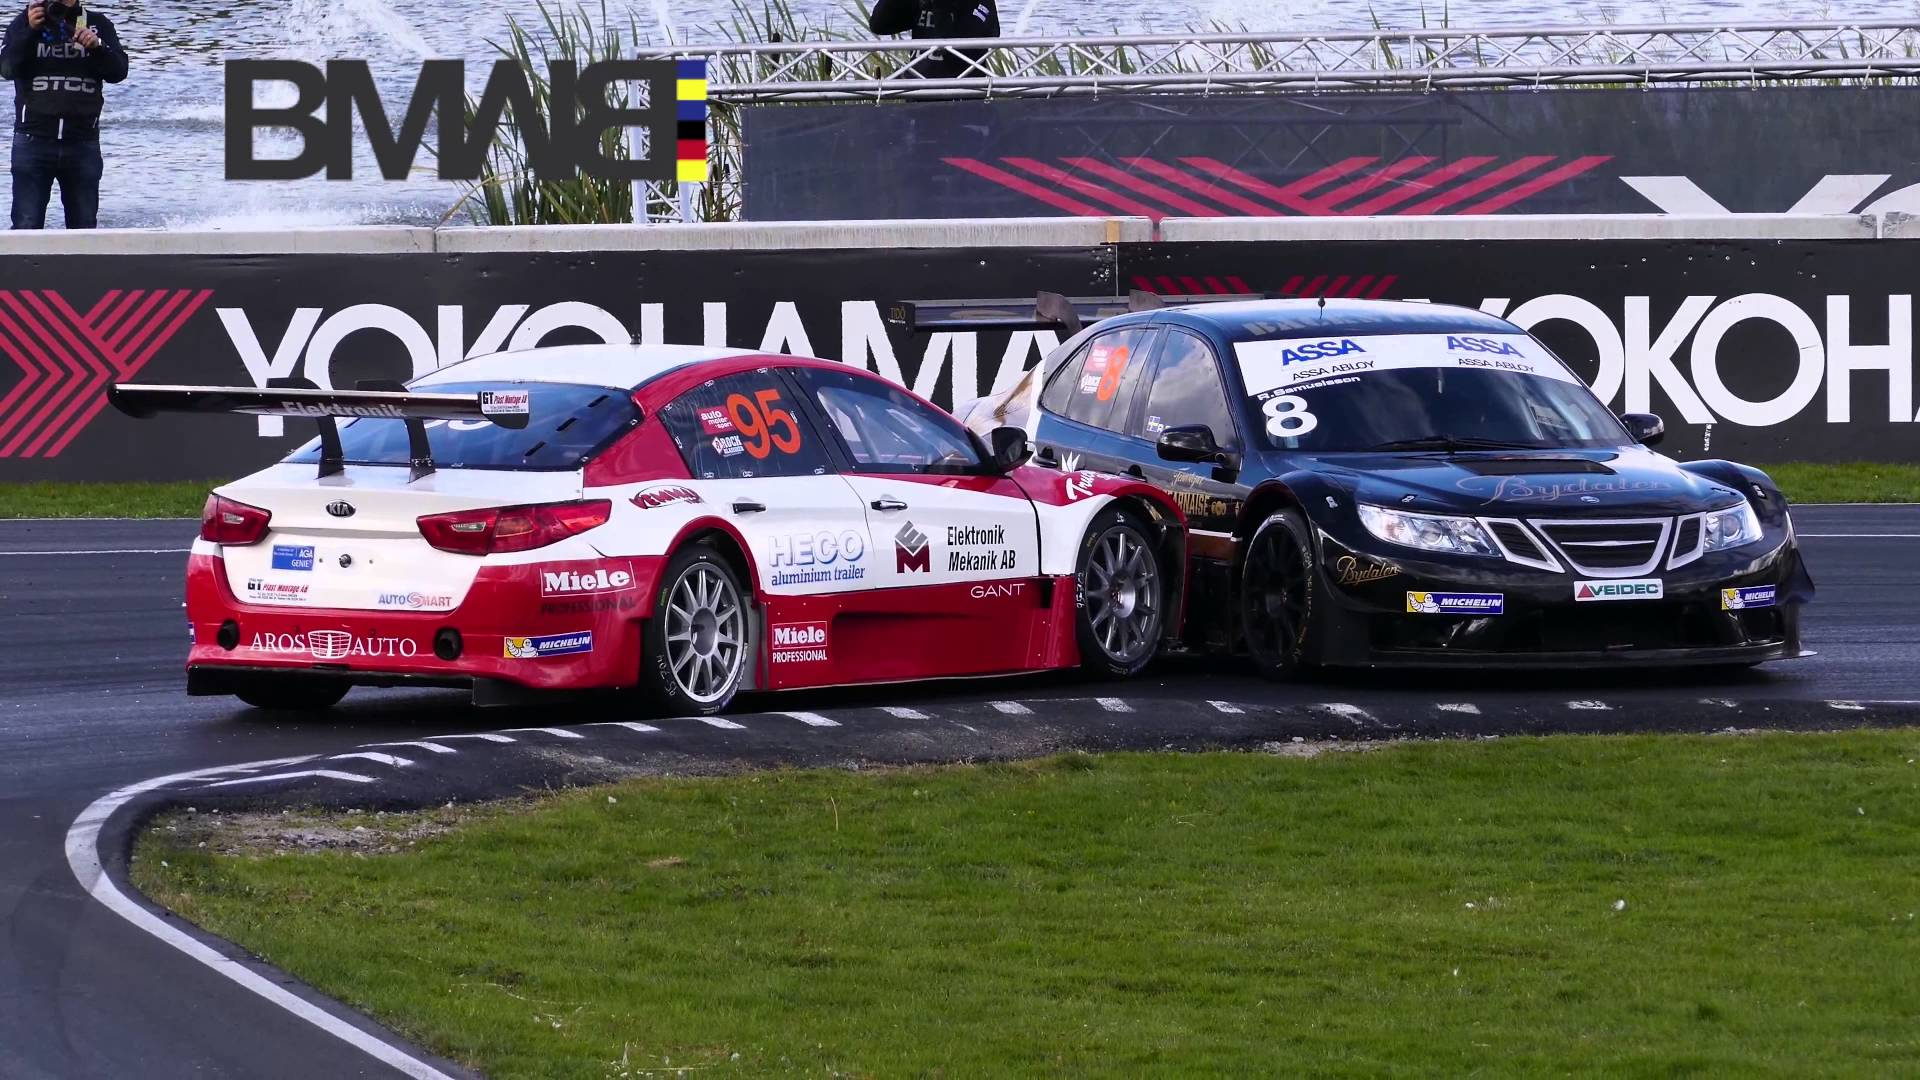 First SAAB 9-3 Victory in STCC